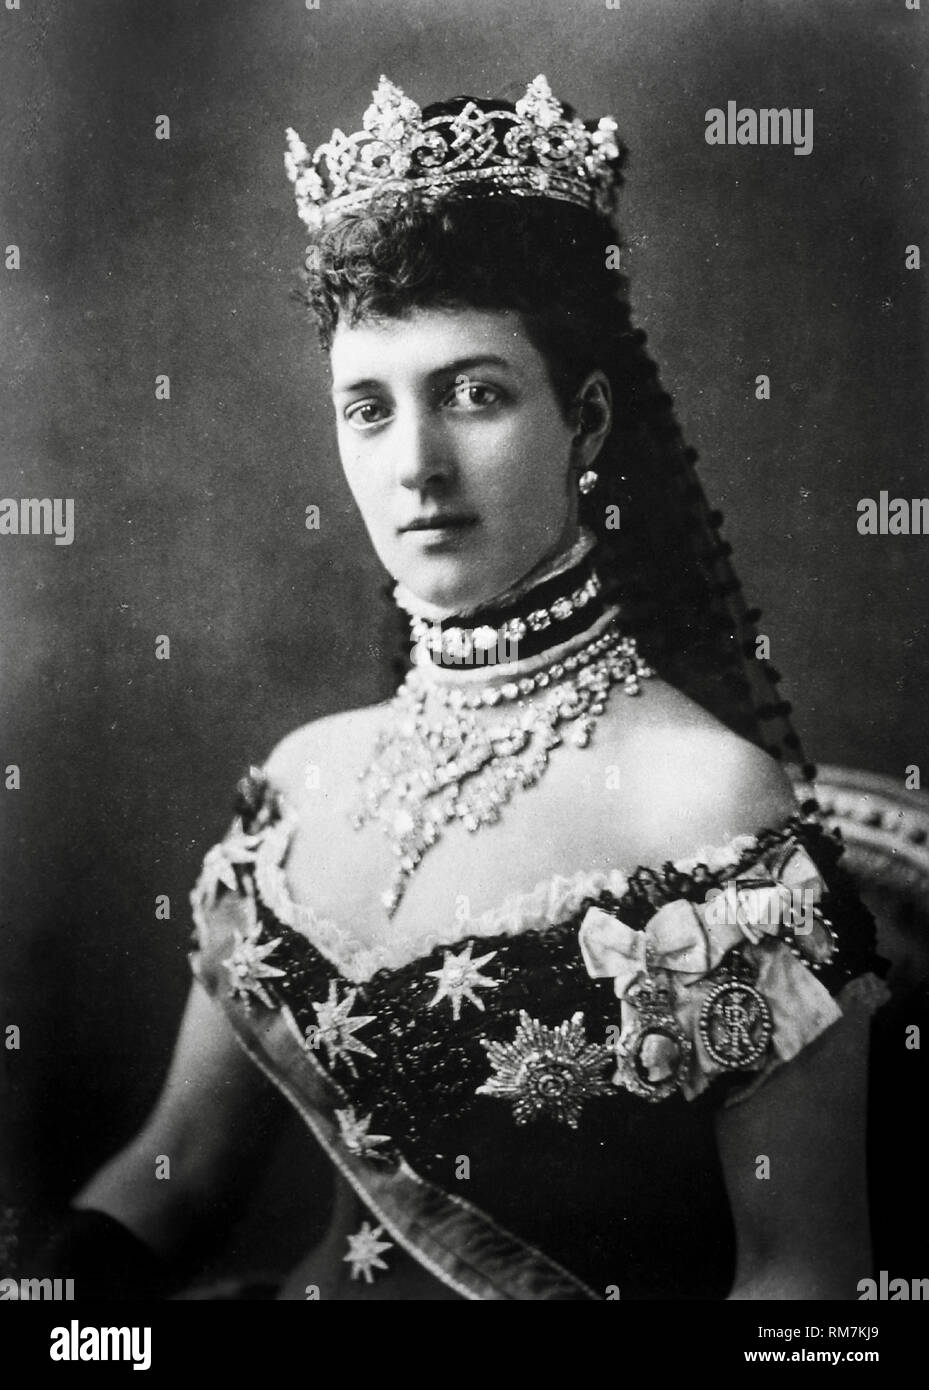 Alexandra of Denmark, Queen Consort to Edward VII of the United Kingdom, portrait photograph by Alexander Bassano 1881 - Stock Image